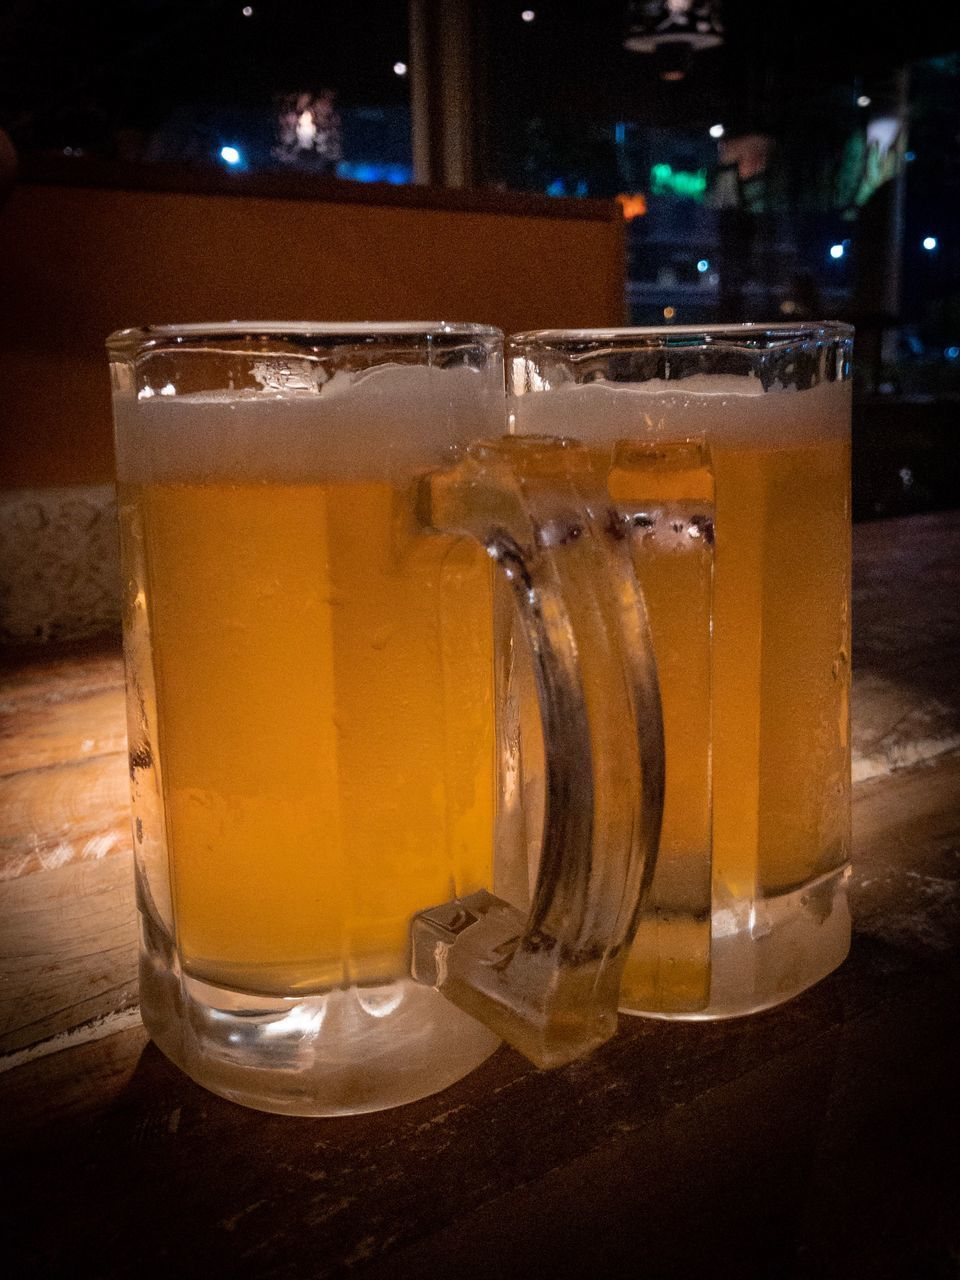 refreshment, drink, food and drink, glass, table, household equipment, drinking glass, close-up, beer, alcohol, freshness, still life, no people, beer glass, indoors, transparent, beer - alcohol, glass - material, food, frothy drink, froth